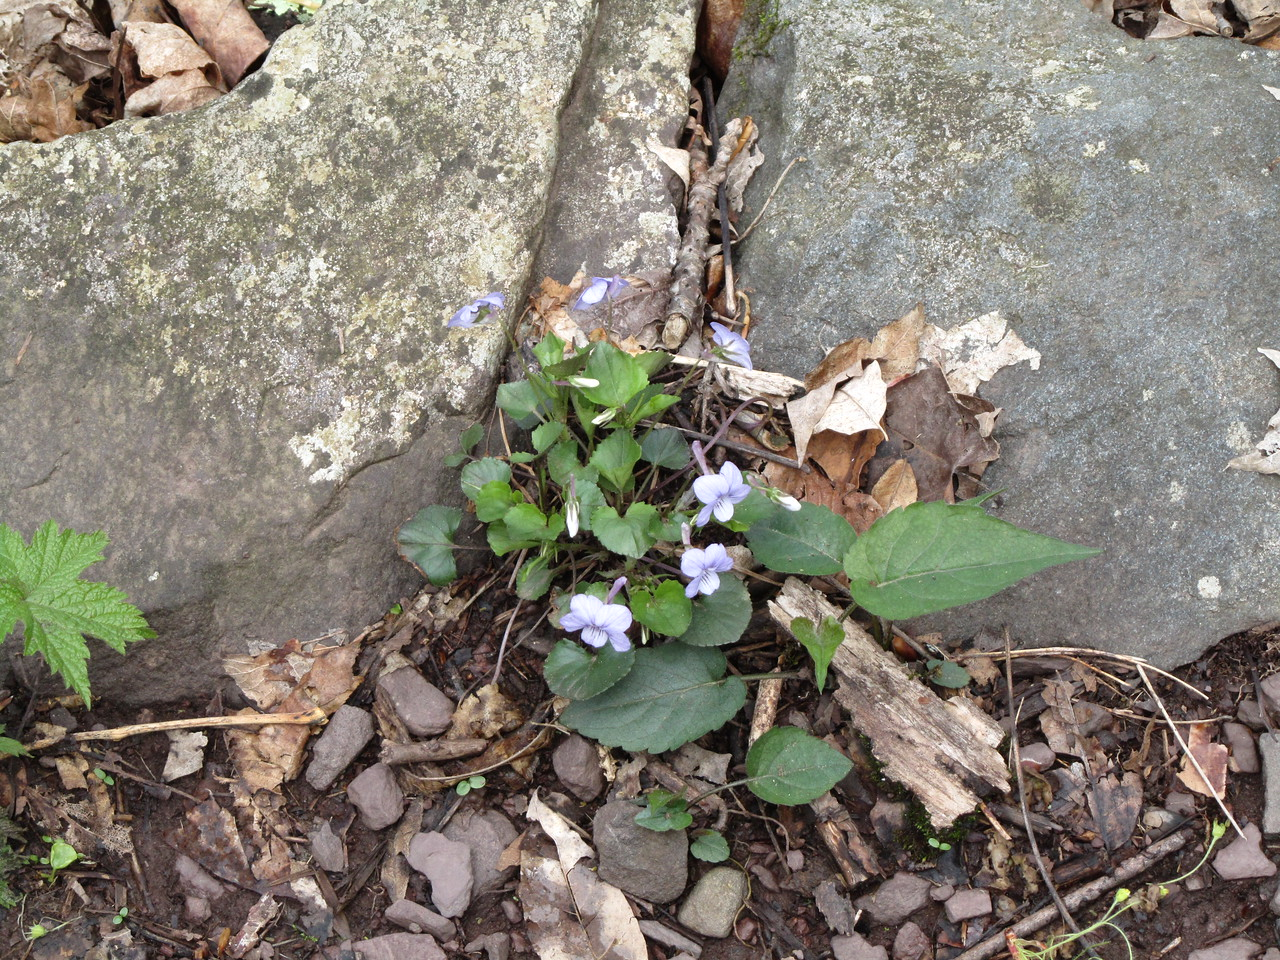 Common blue violet. colors were more vibrant in person. picture did not take well.